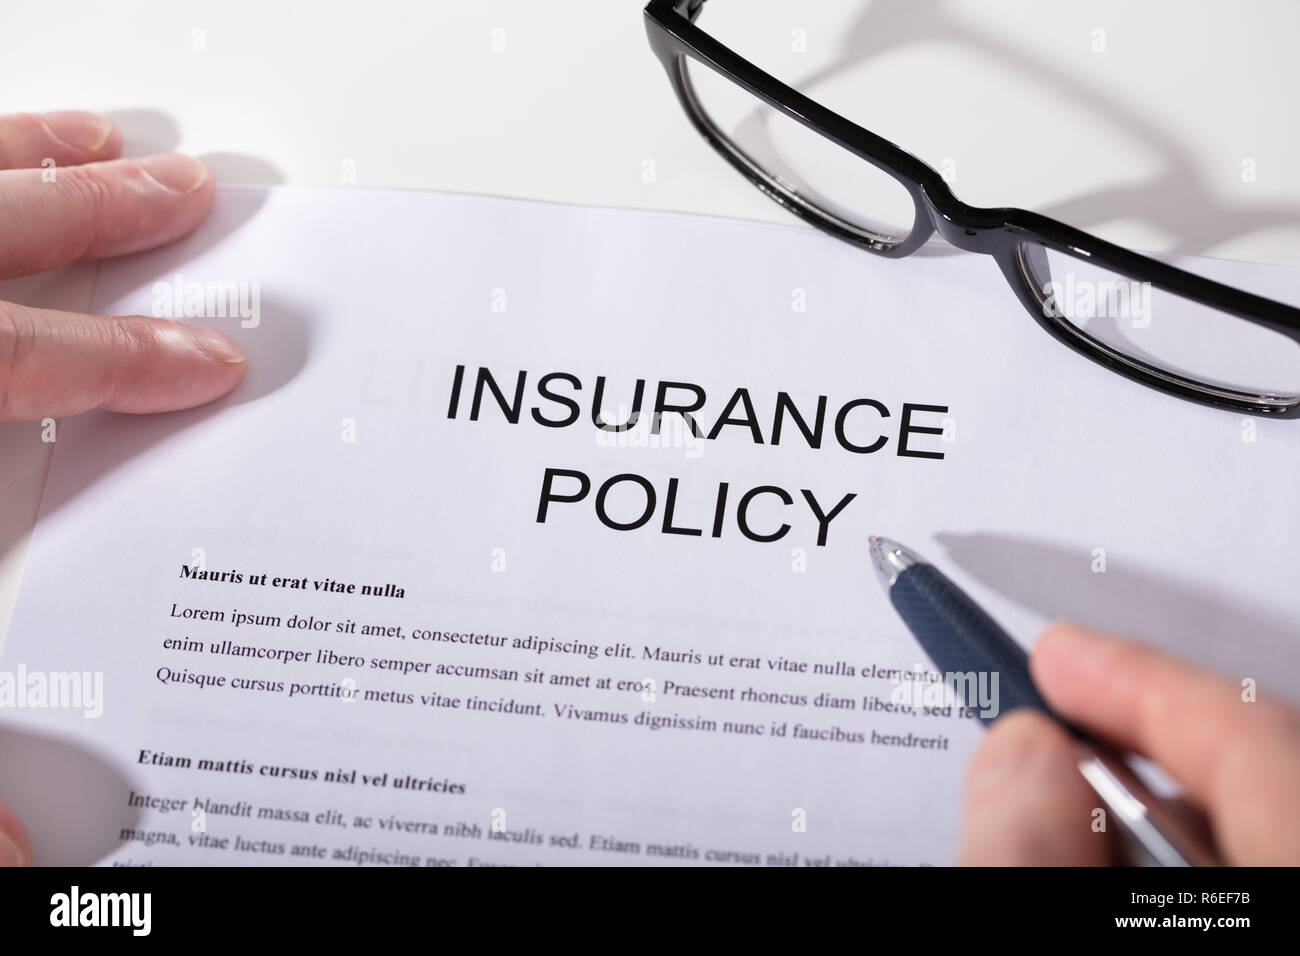 Person's Hand Over Insurance Policy Form - Stock Image